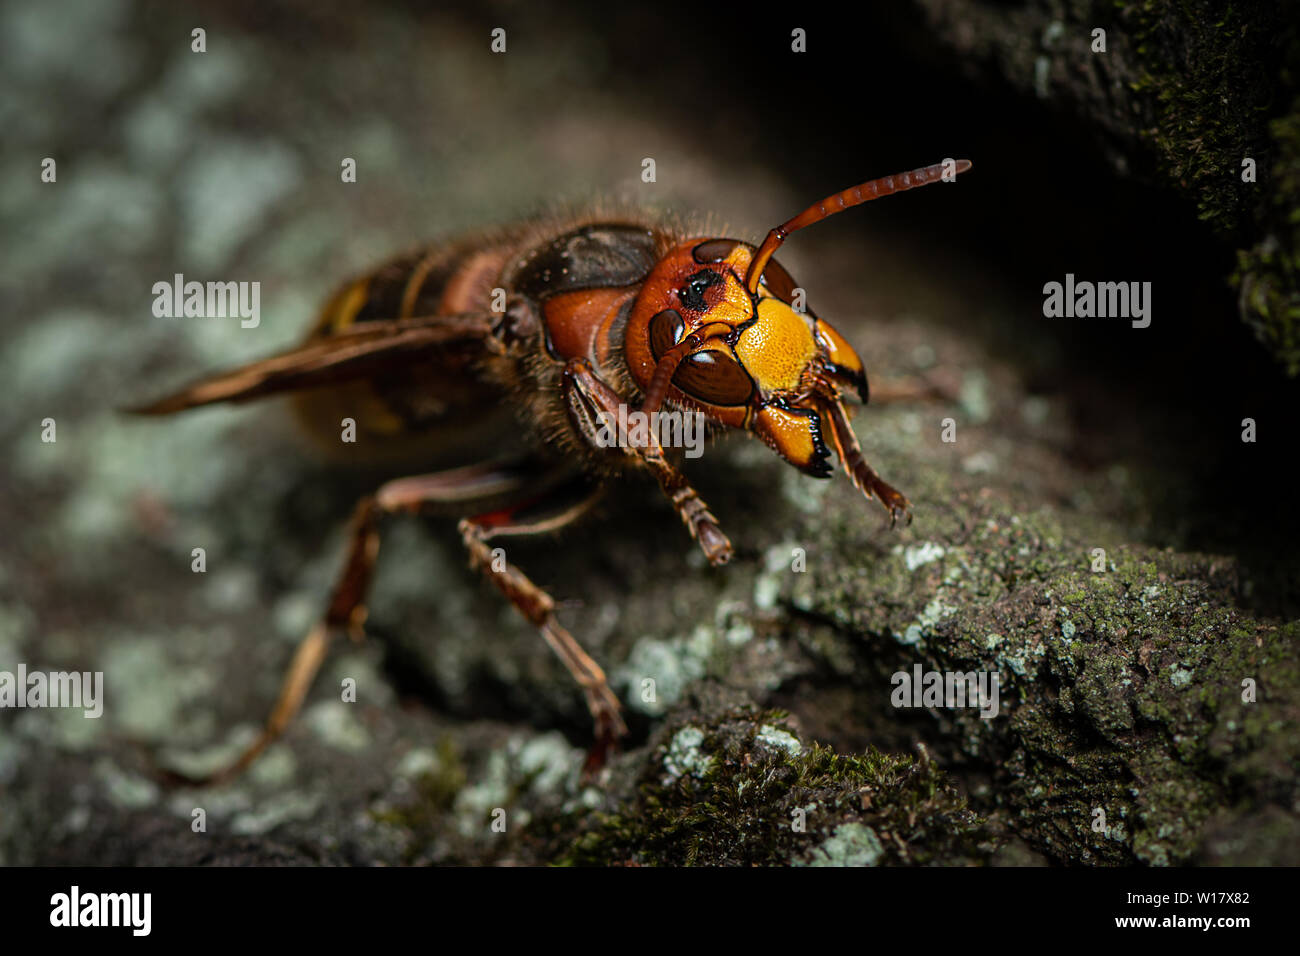 A European hornet (Vespa crabro) sitting on a tree - Stock Image